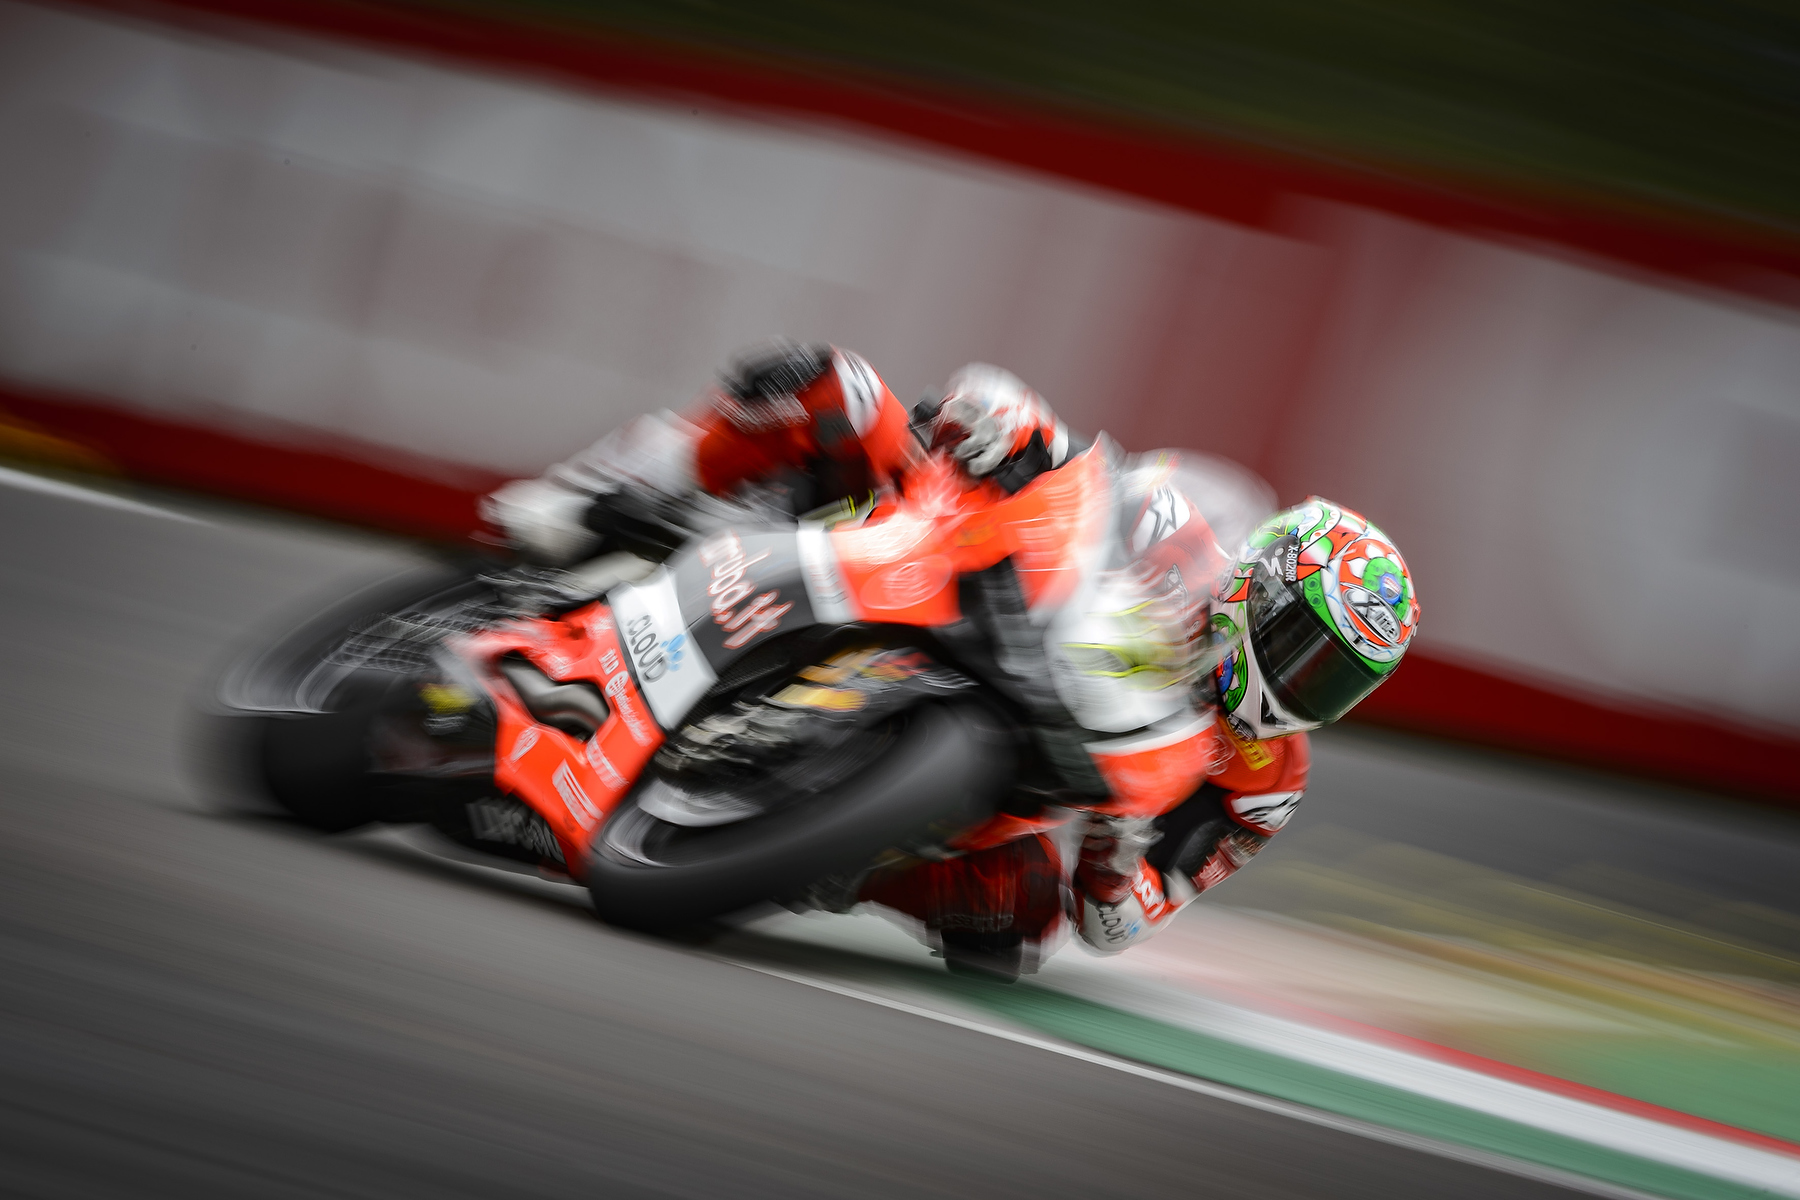 030_R05_Imola_gallery